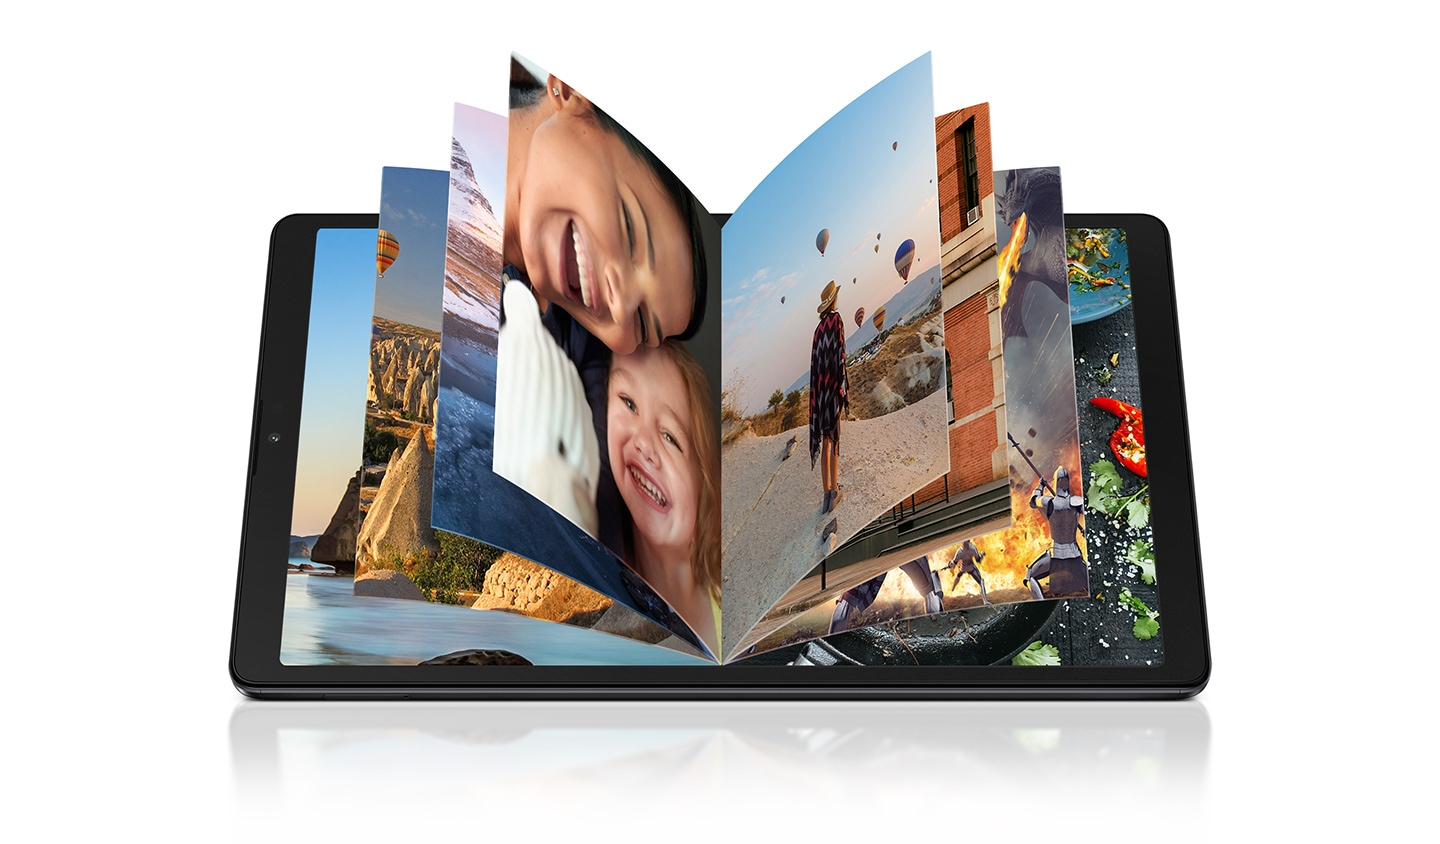 Photos are flipped through on the Galaxy Tab A7 Lite's device, demonstrating how much content can be stored on the device.